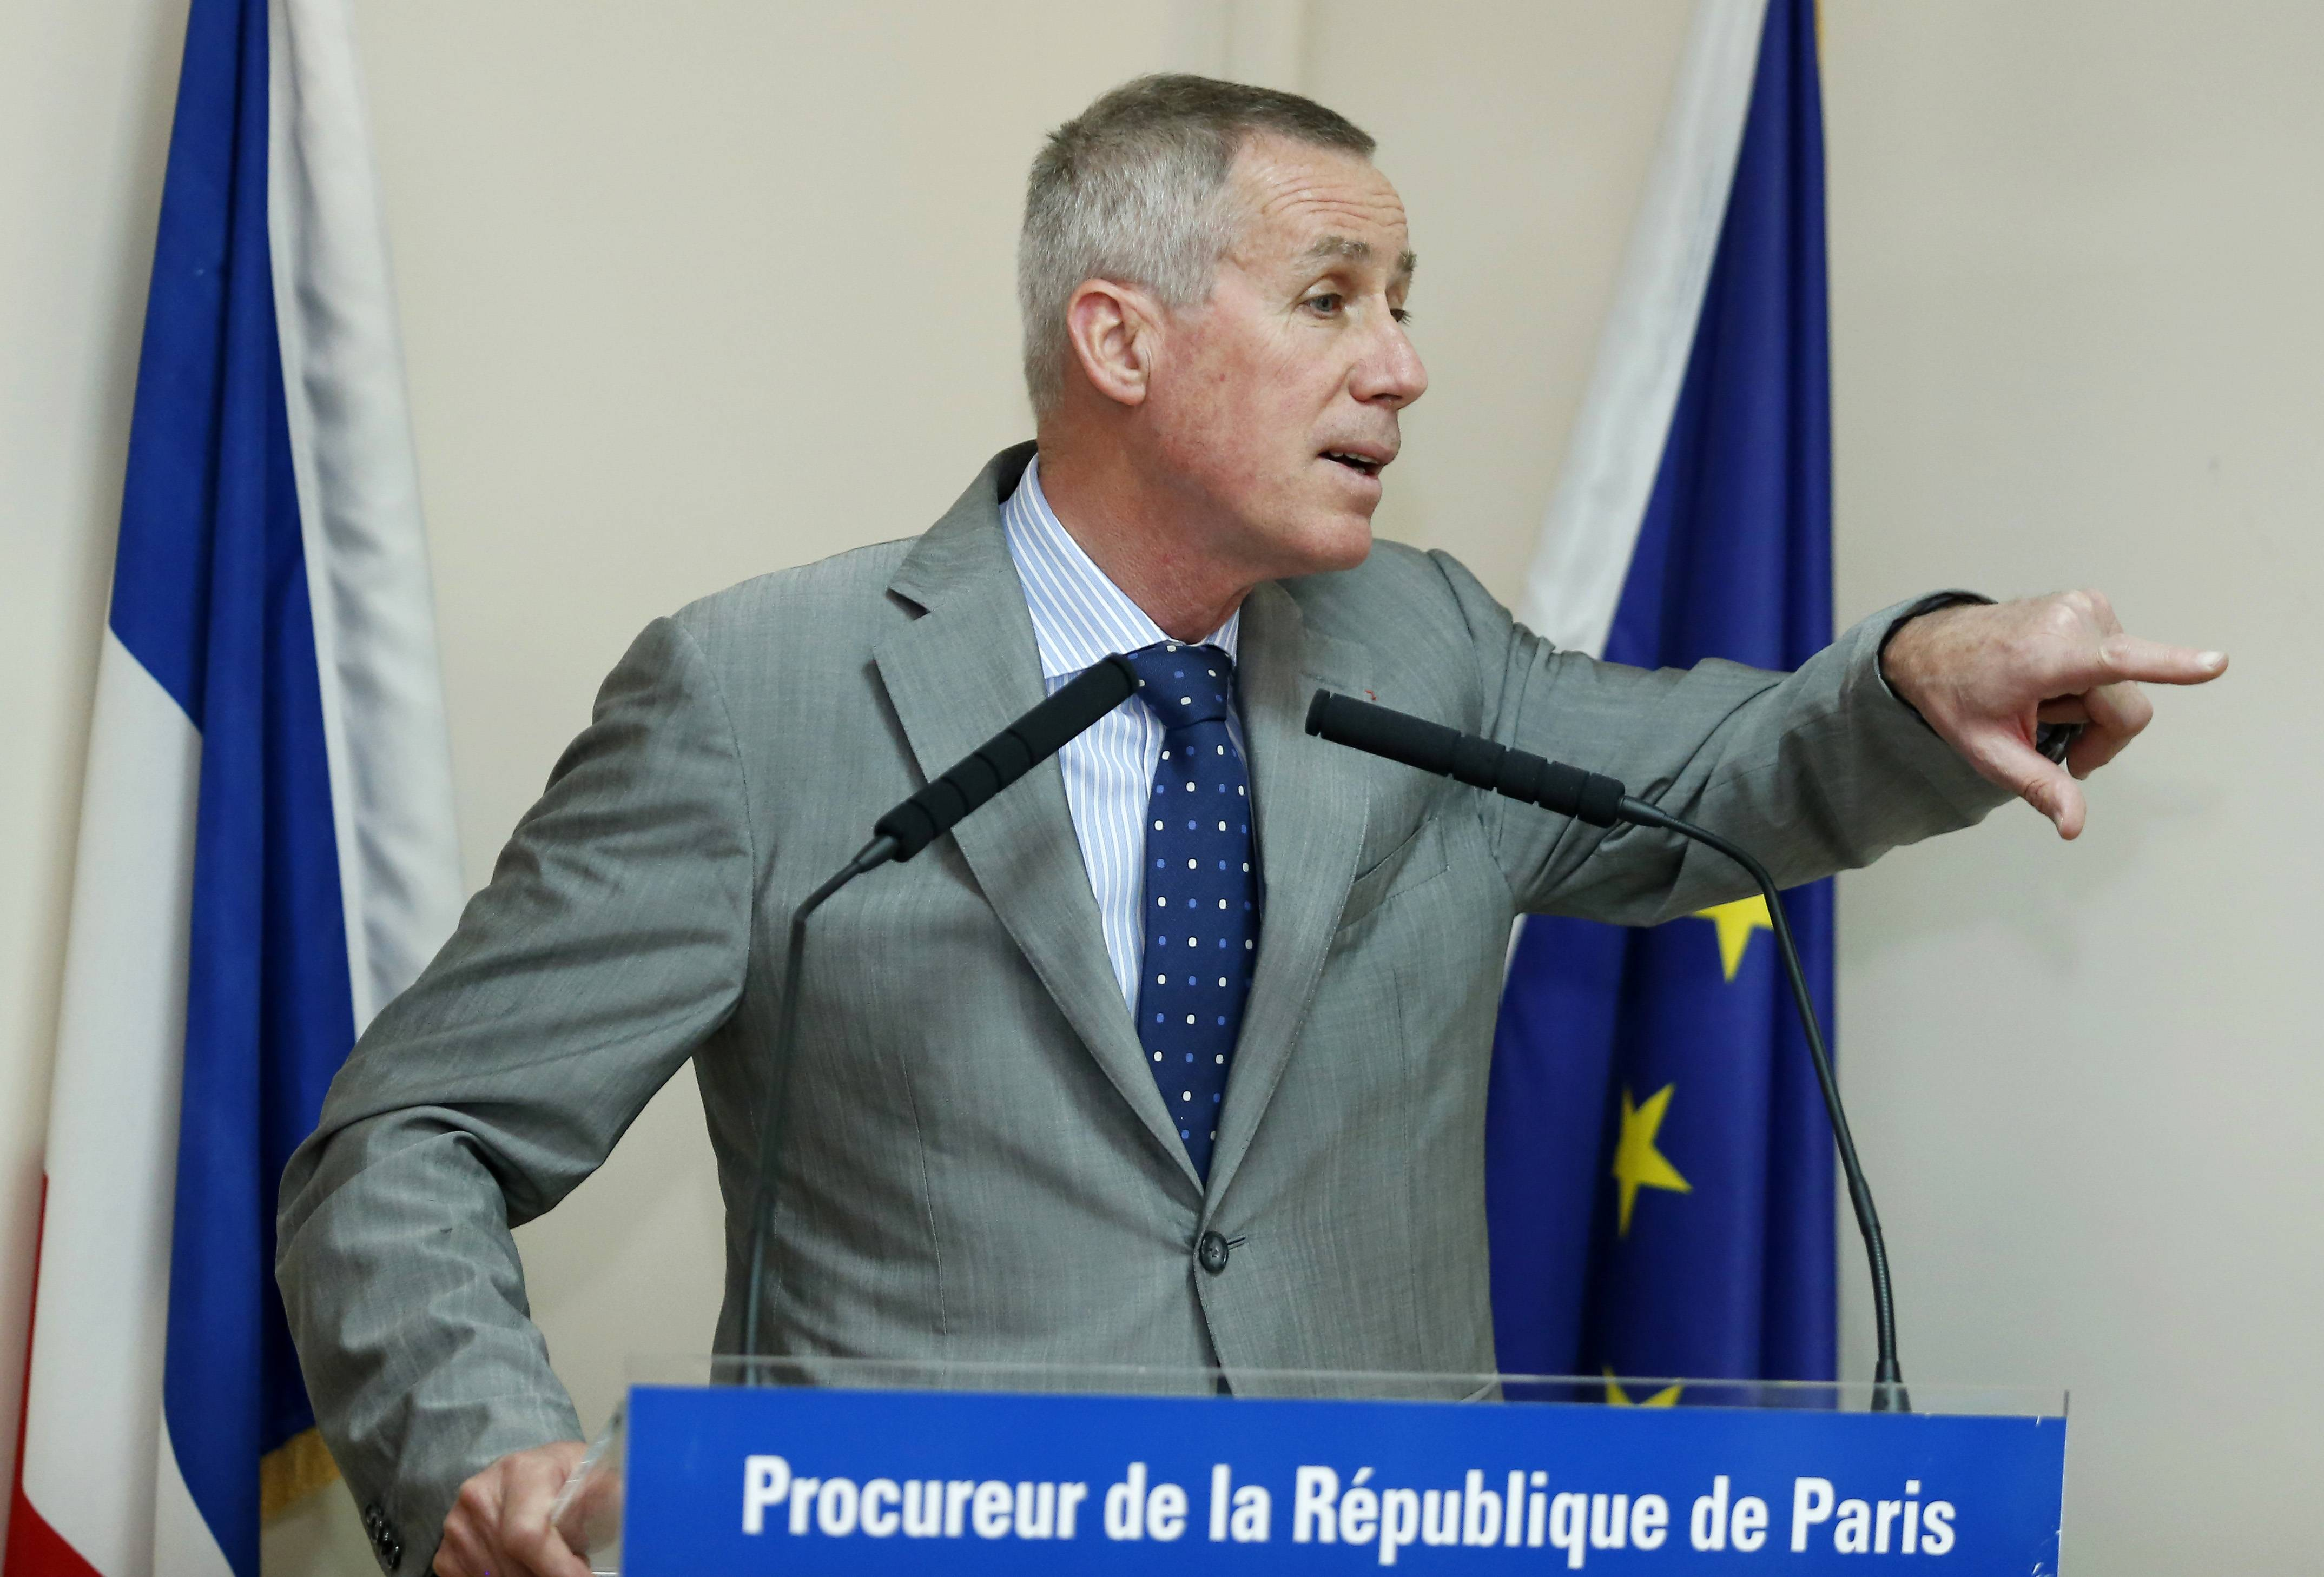 Paris prosecutor François Molins addresses the media in Paris Sunday about an arrest made Friday in Marseille.